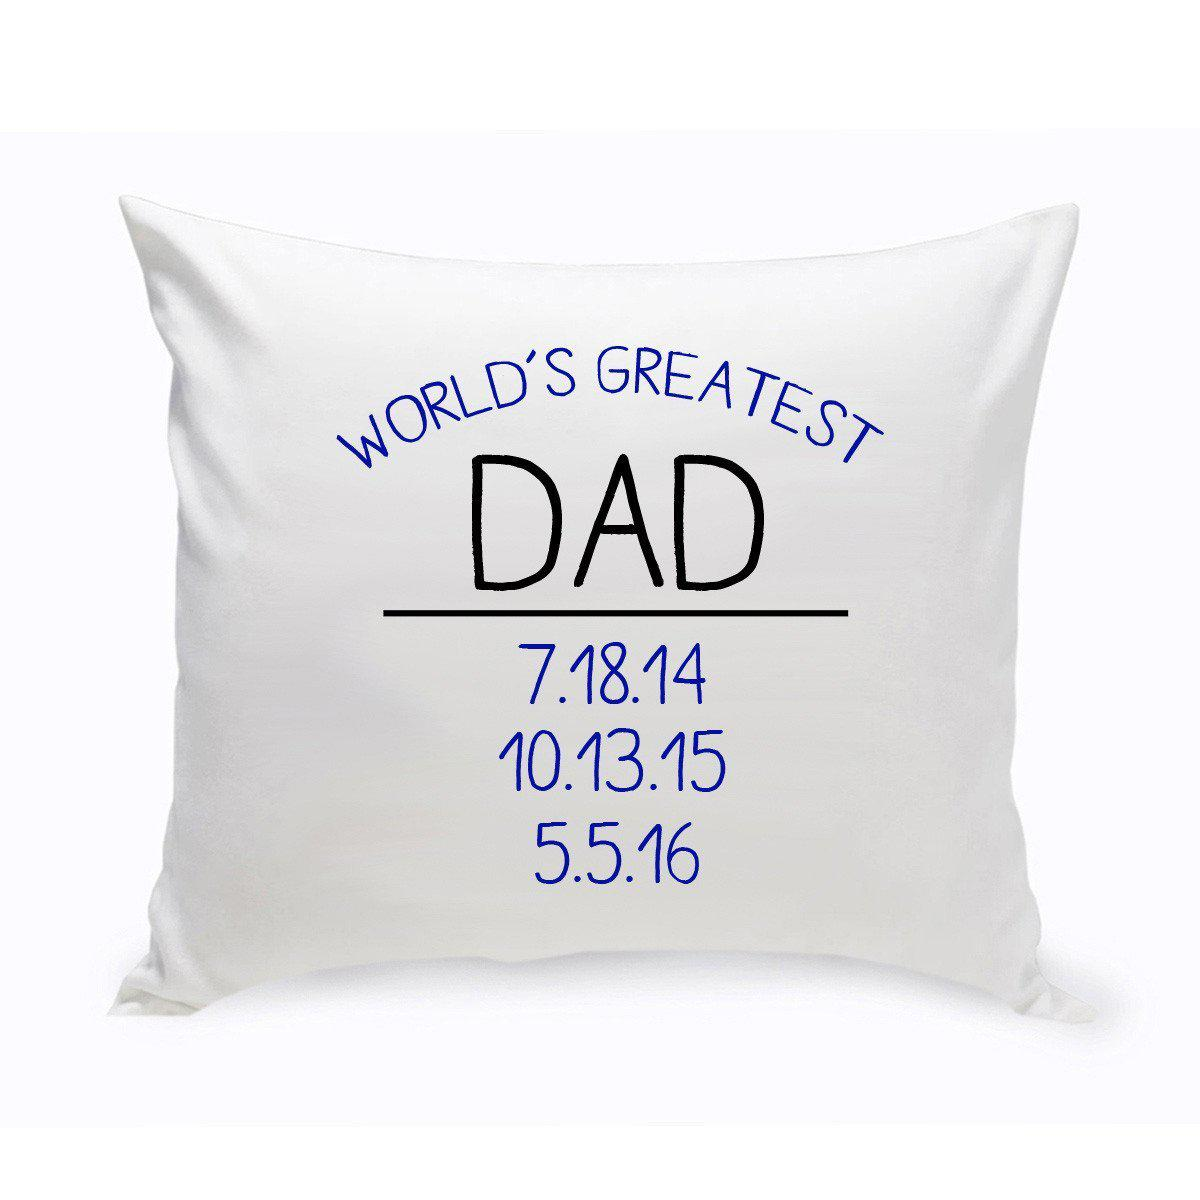 Worlds-Greatest-Dad-Throw-Pillow